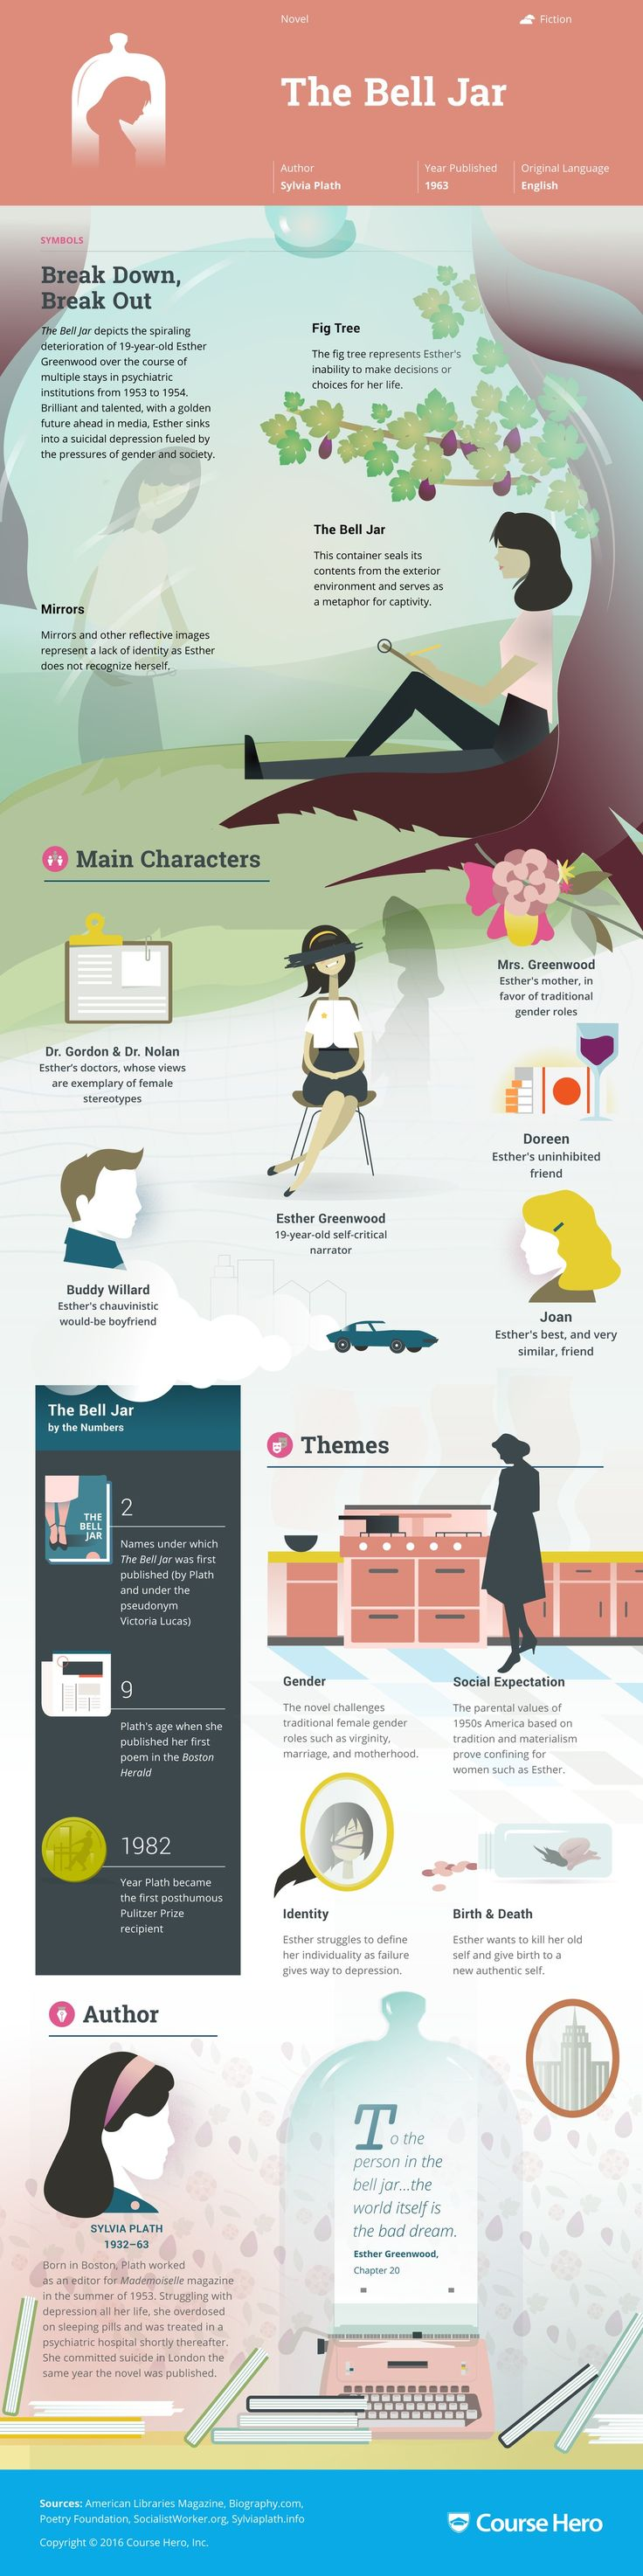 The Bell Jar Infographic | Course Hero